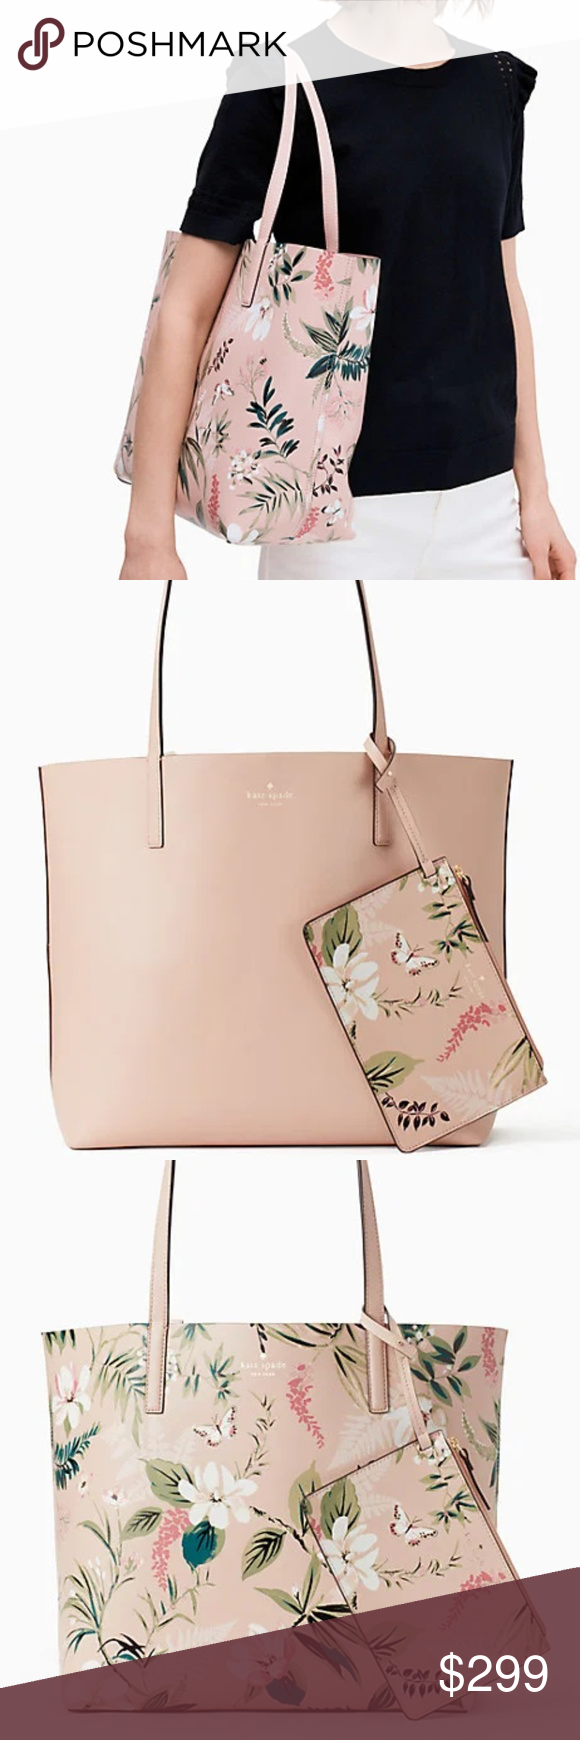 f4a6f603bb508 JUST IN! kate spade arch place mya botanical kate spade new york arch place  mya botanical reversible tote in pink multi 2.4